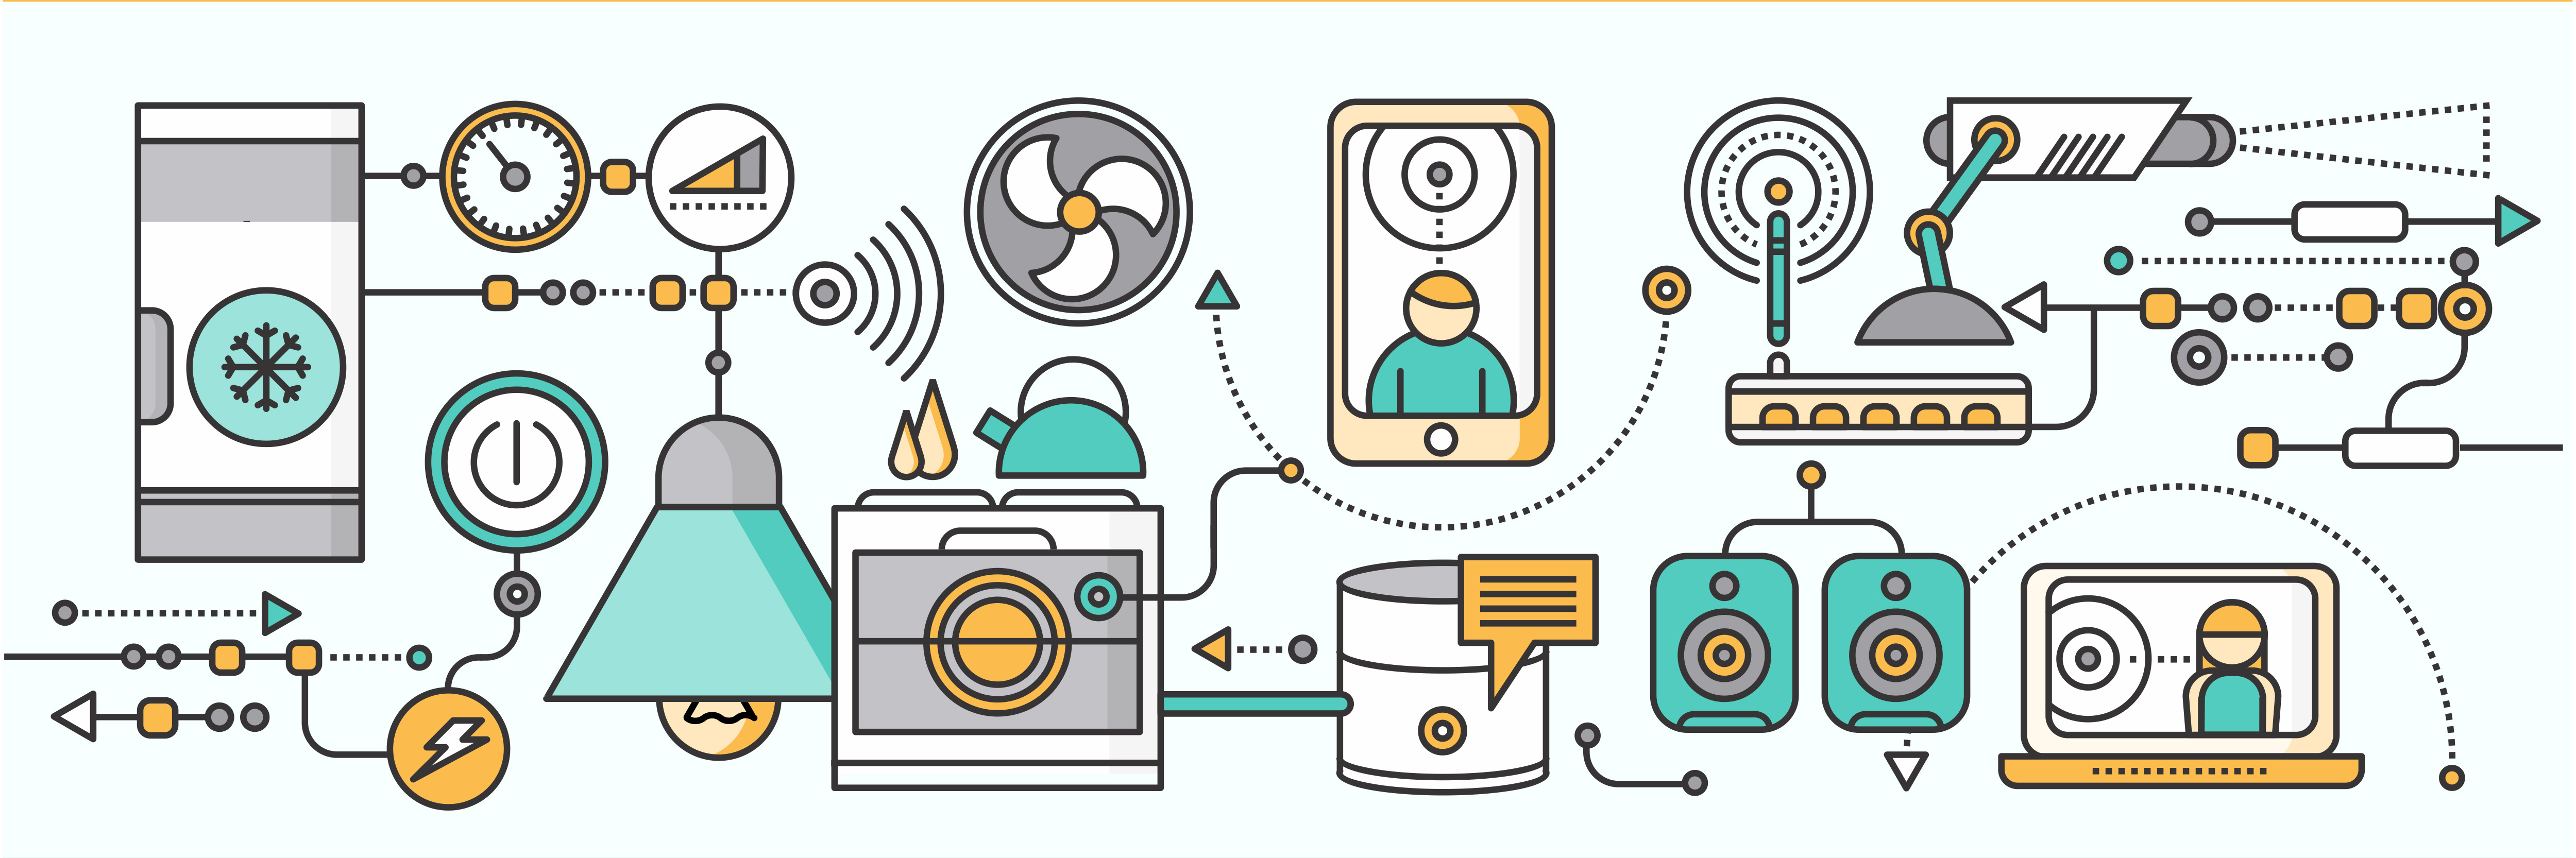 Concept of smart home and control device. Technology device, system mobile automation, monitoring energy power, electricity efficiency, equipment temperature, remote thermostat illustration